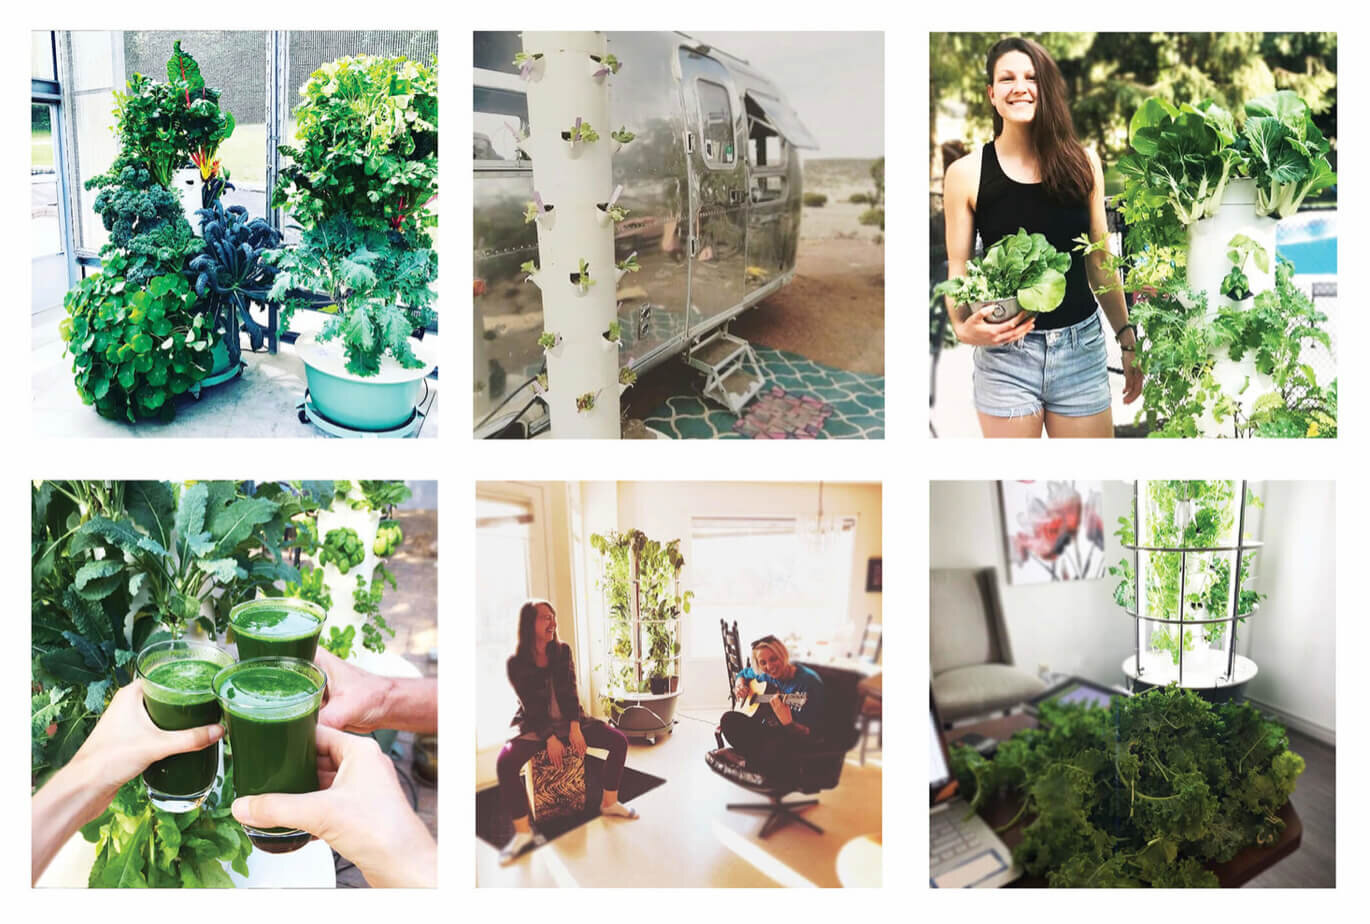 Tower Gardens by Juice Plus - Grow your own organic food anywhere!